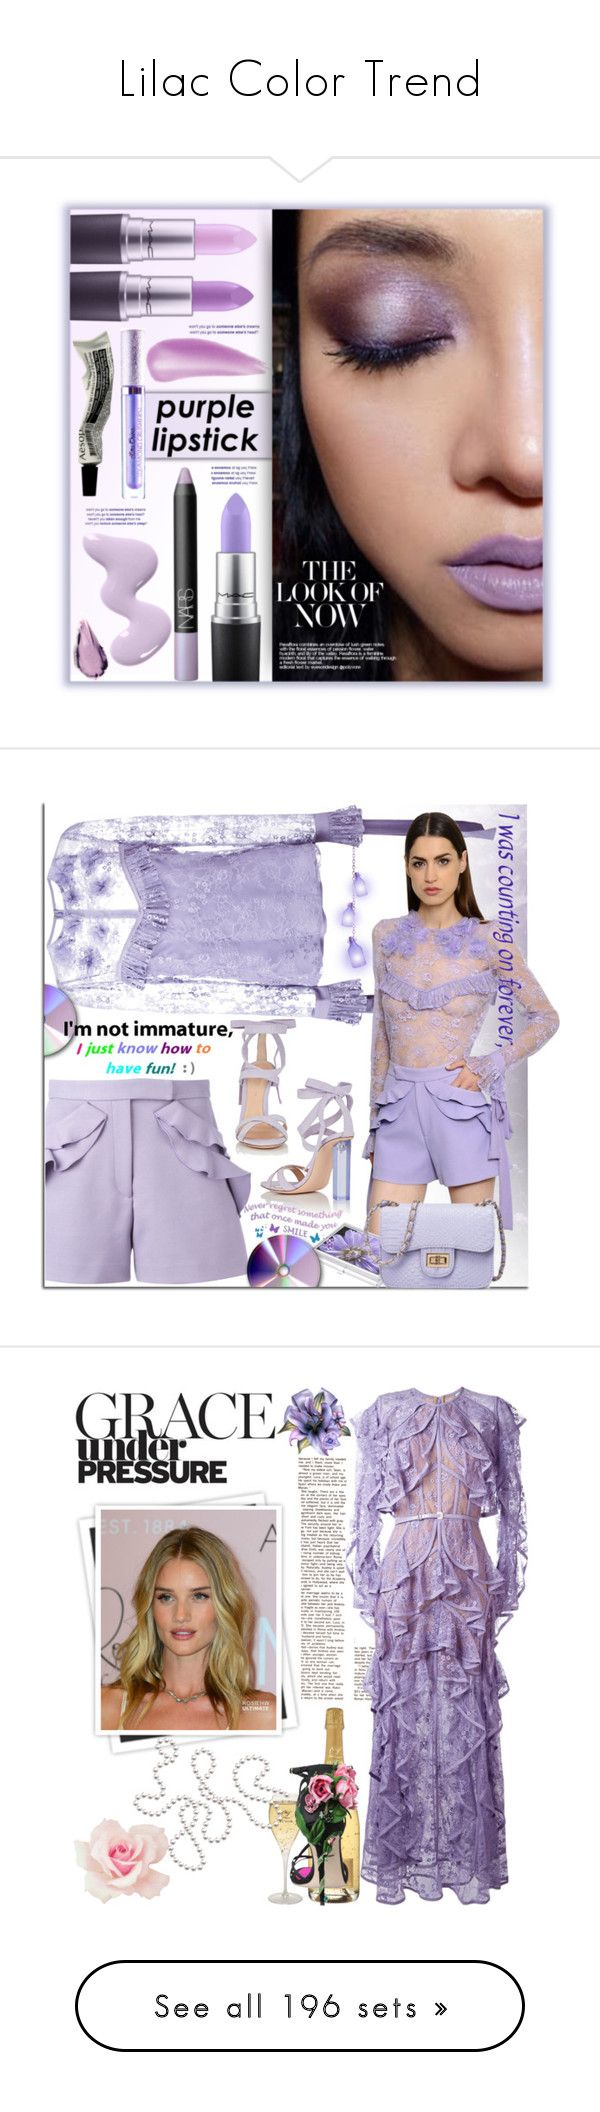 lilac color trend by yours styling best friend liked on